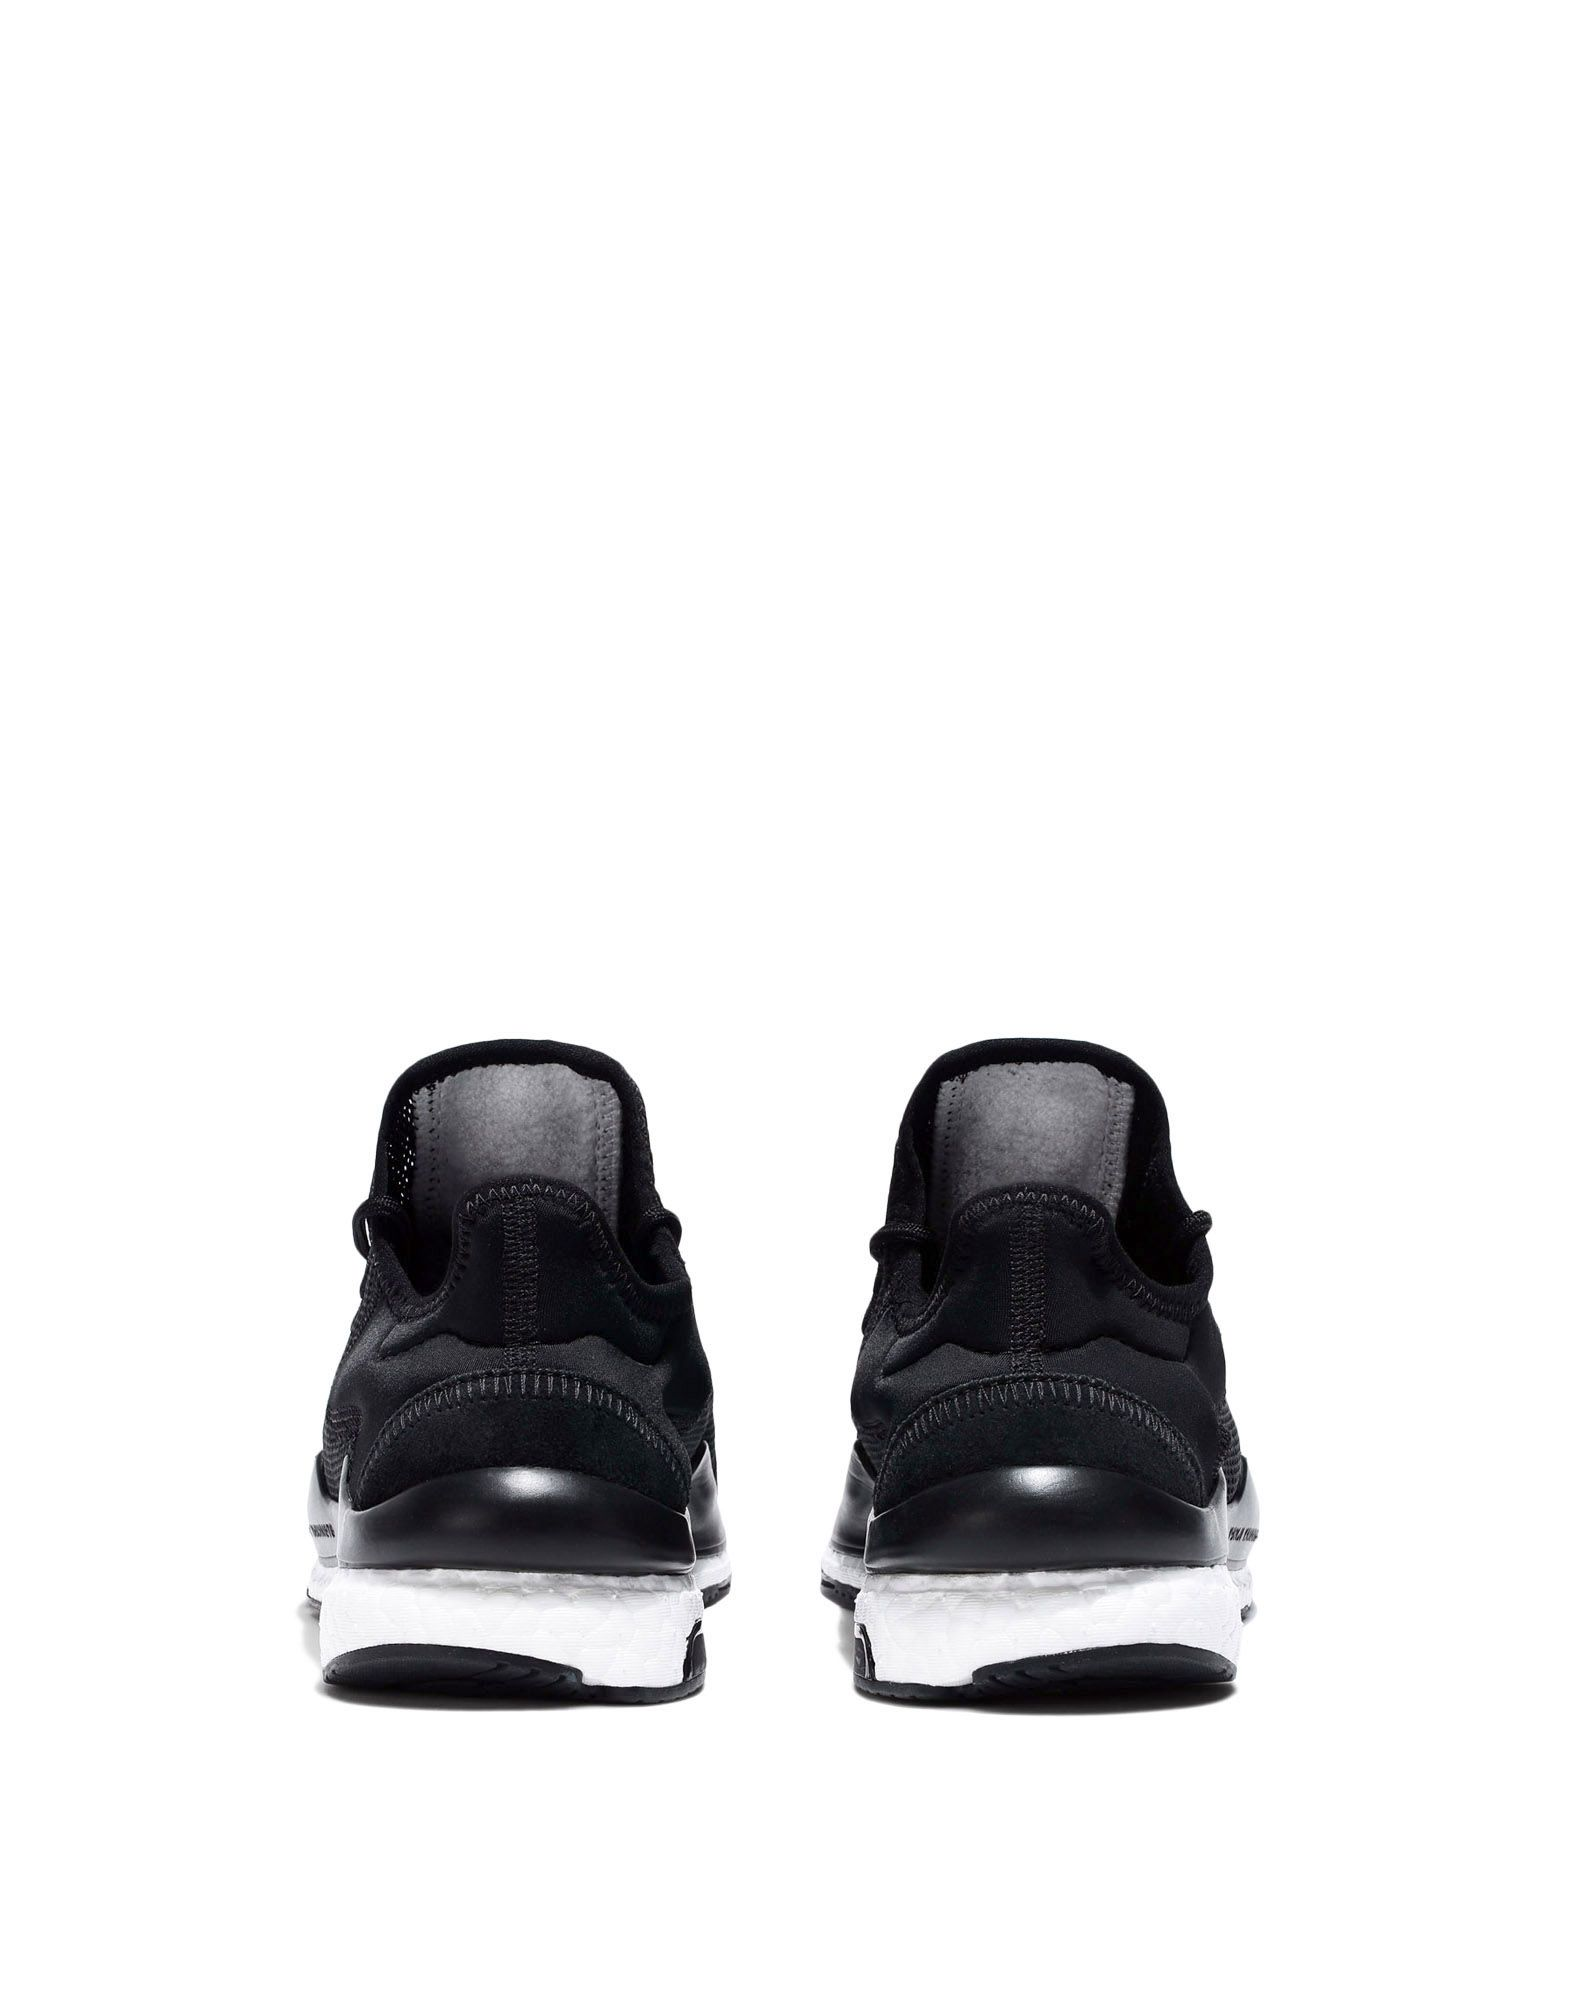 Y-3 Adizero Runner SHOES unisex Y-3 adidas